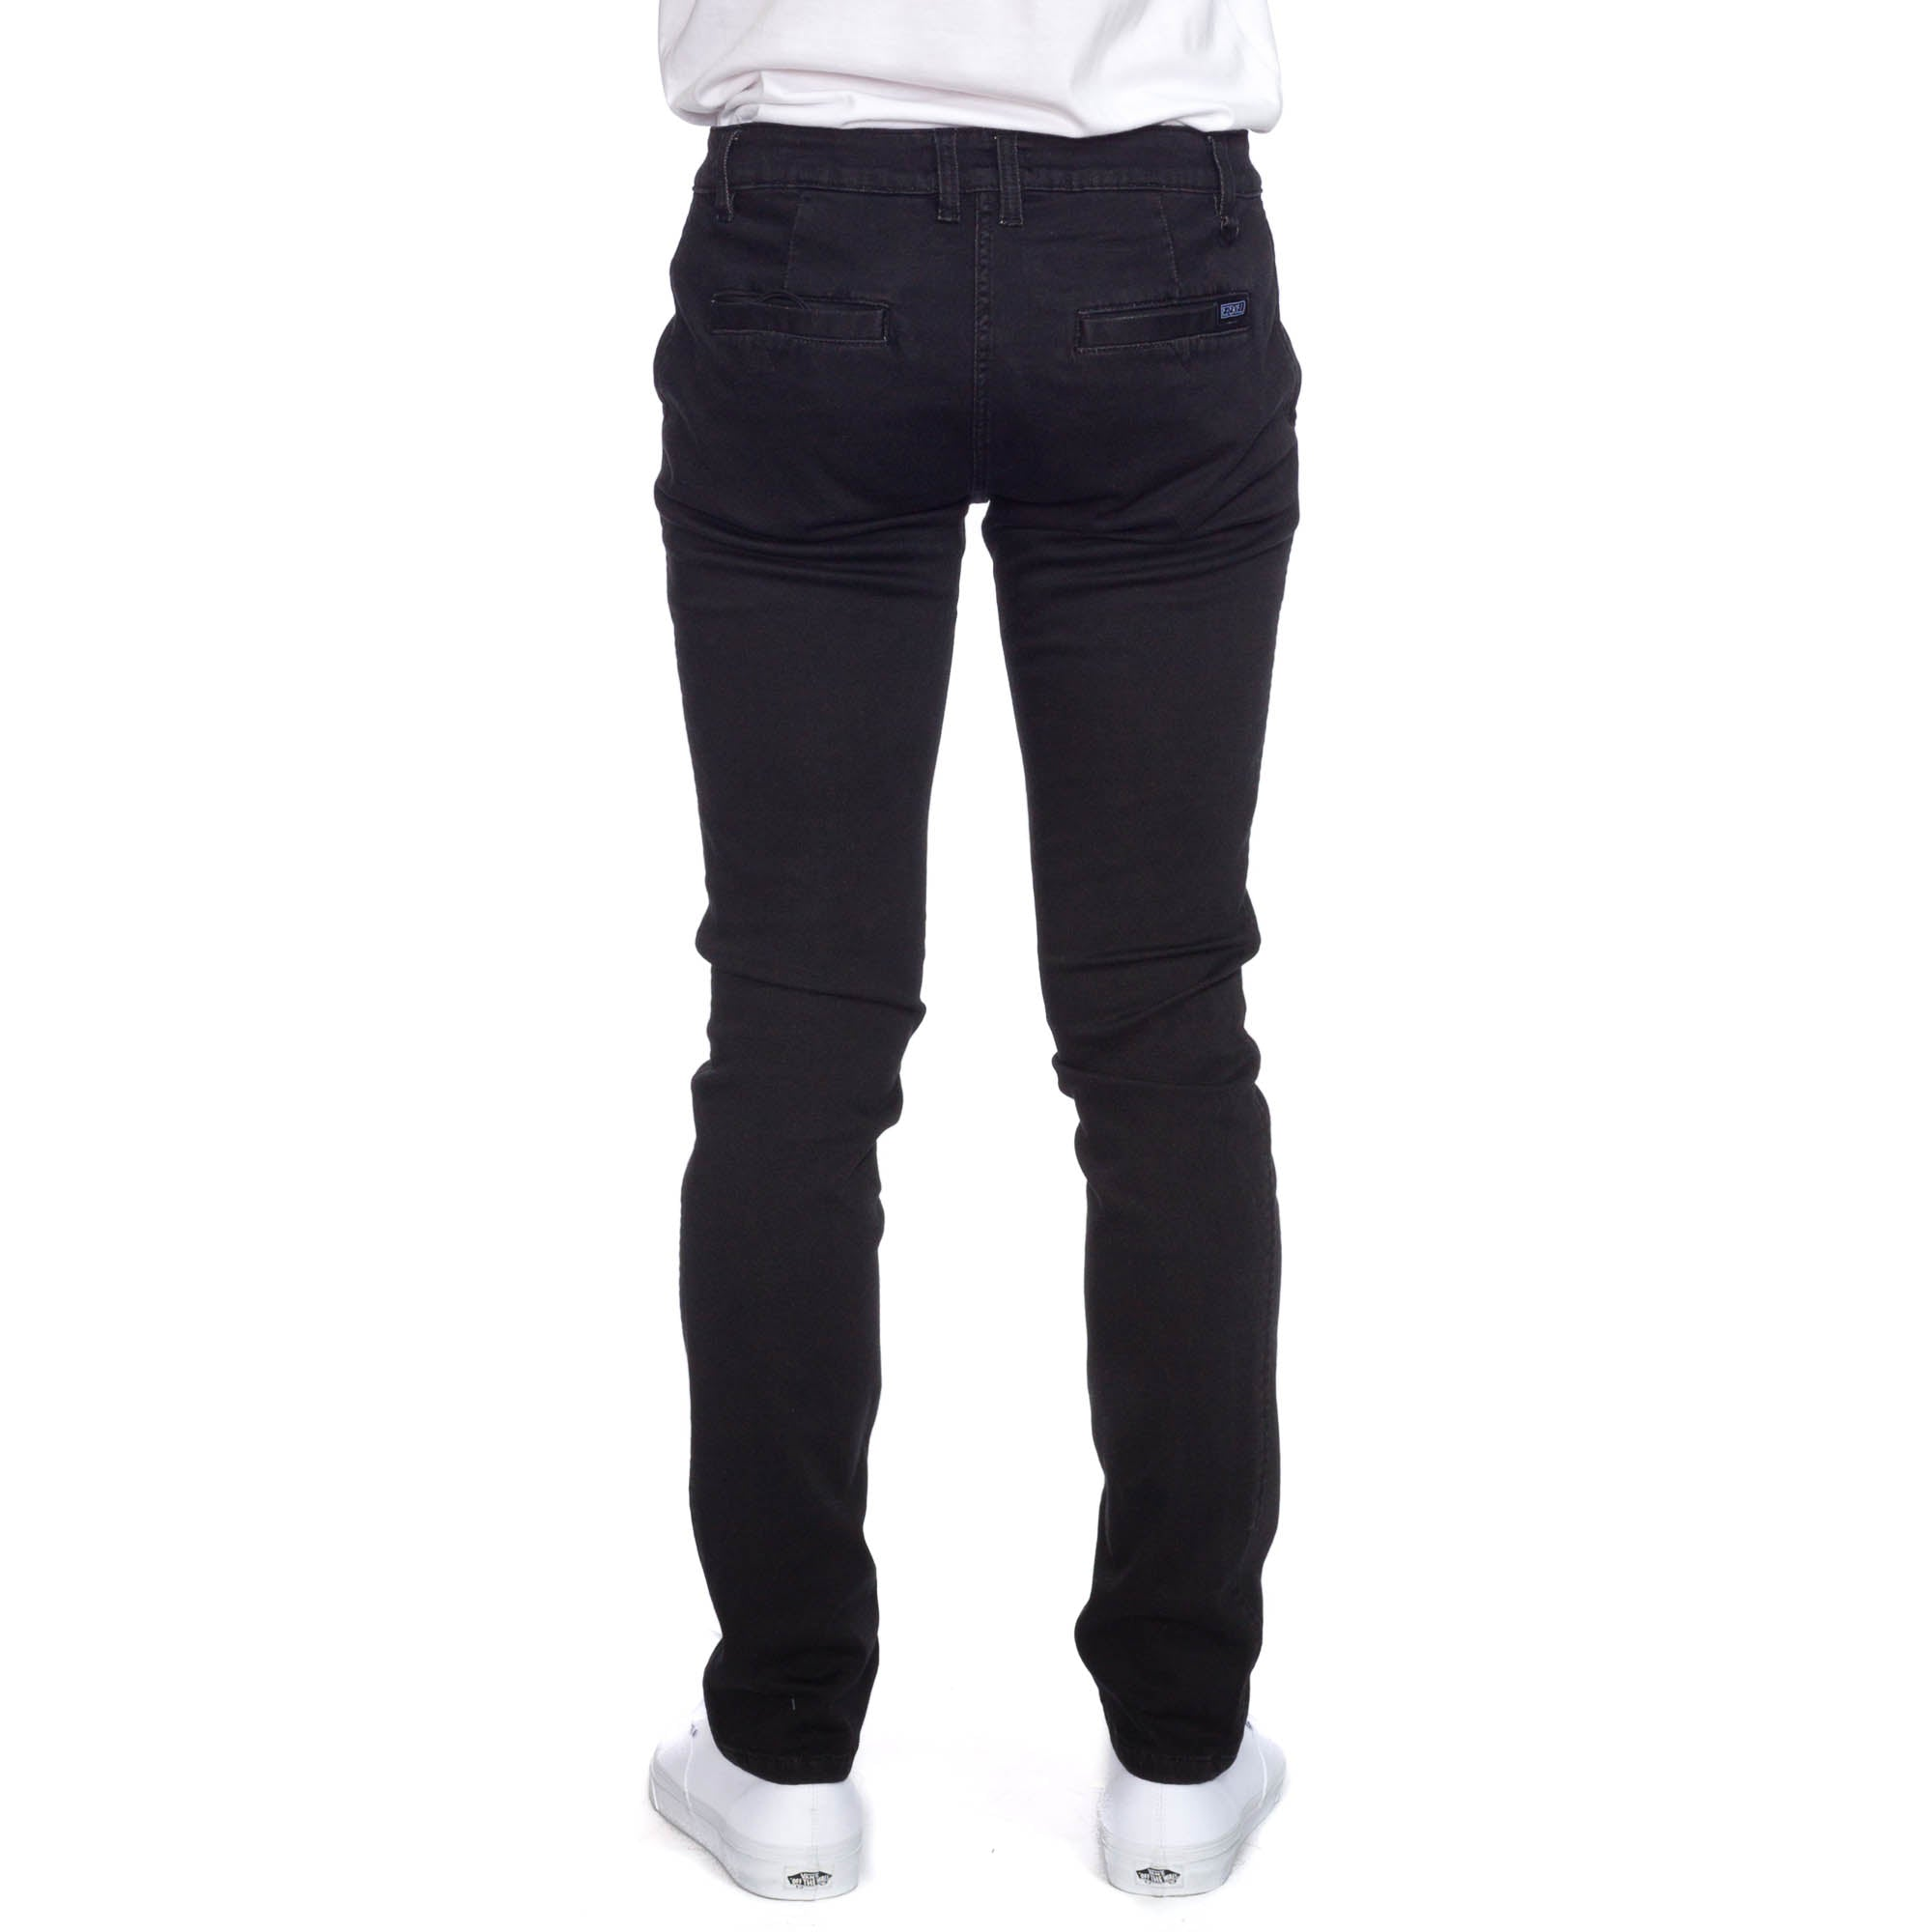 Bounce Pant - Black - Ezekiel Clothing